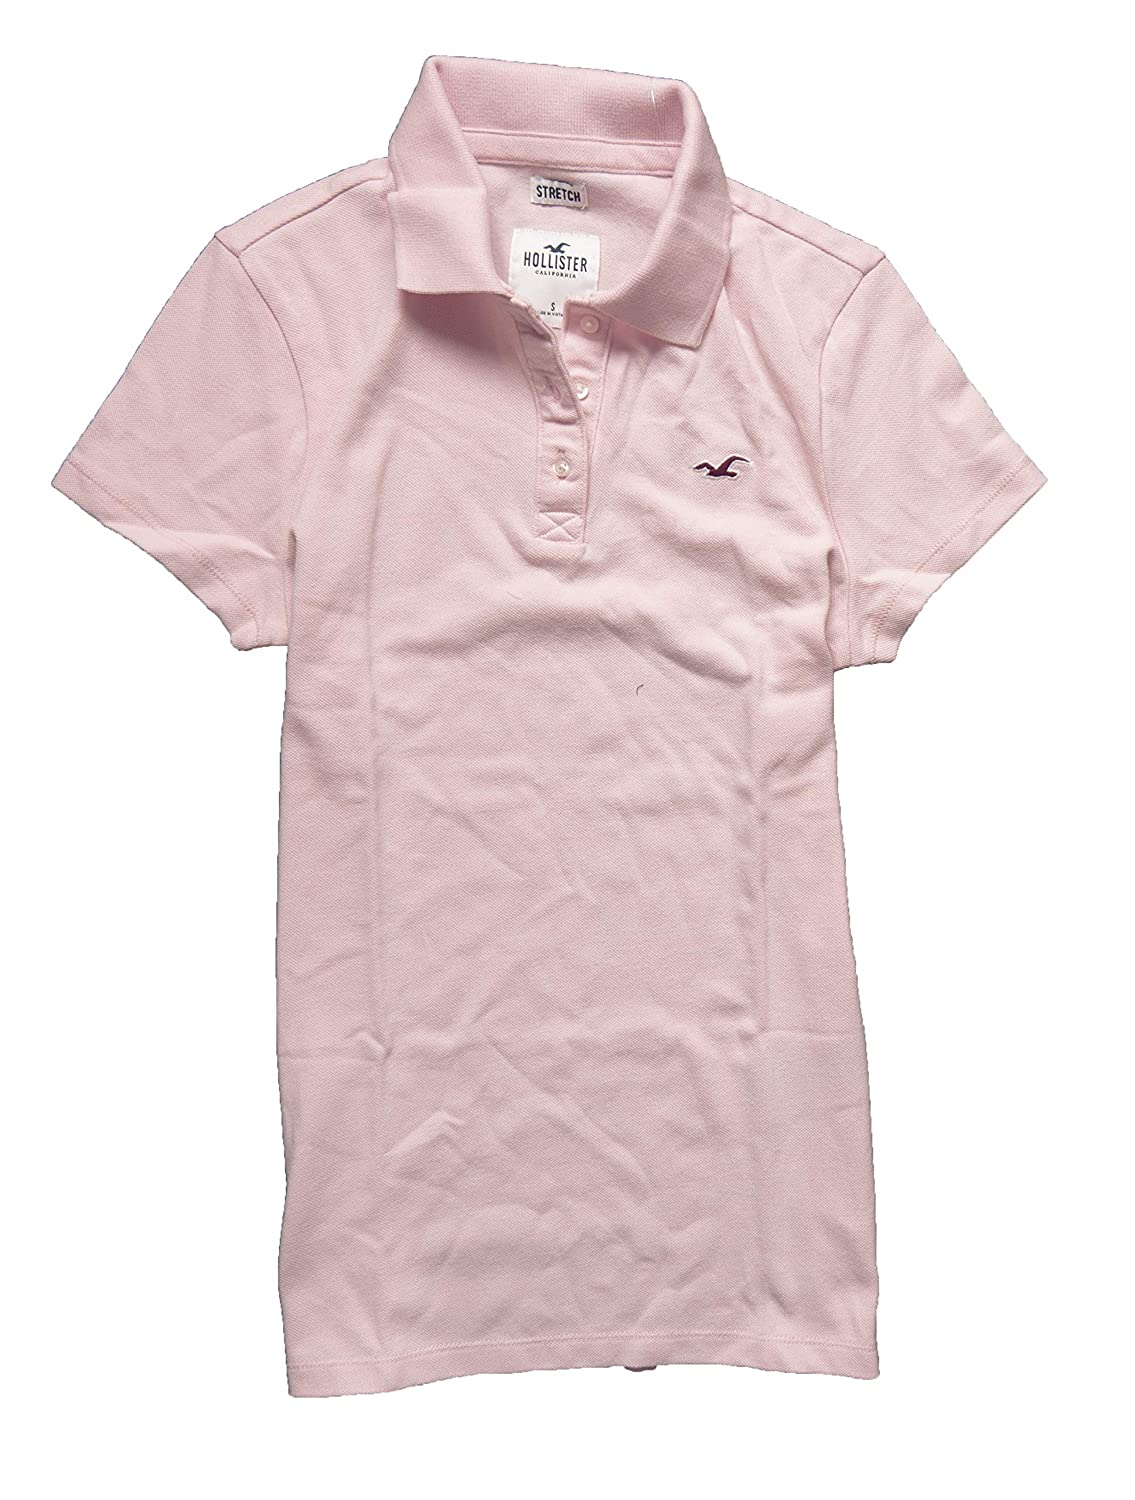 6d89a910578187 Hollister Polo Shirts Amazon – EDGE Engineering and Consulting Limited